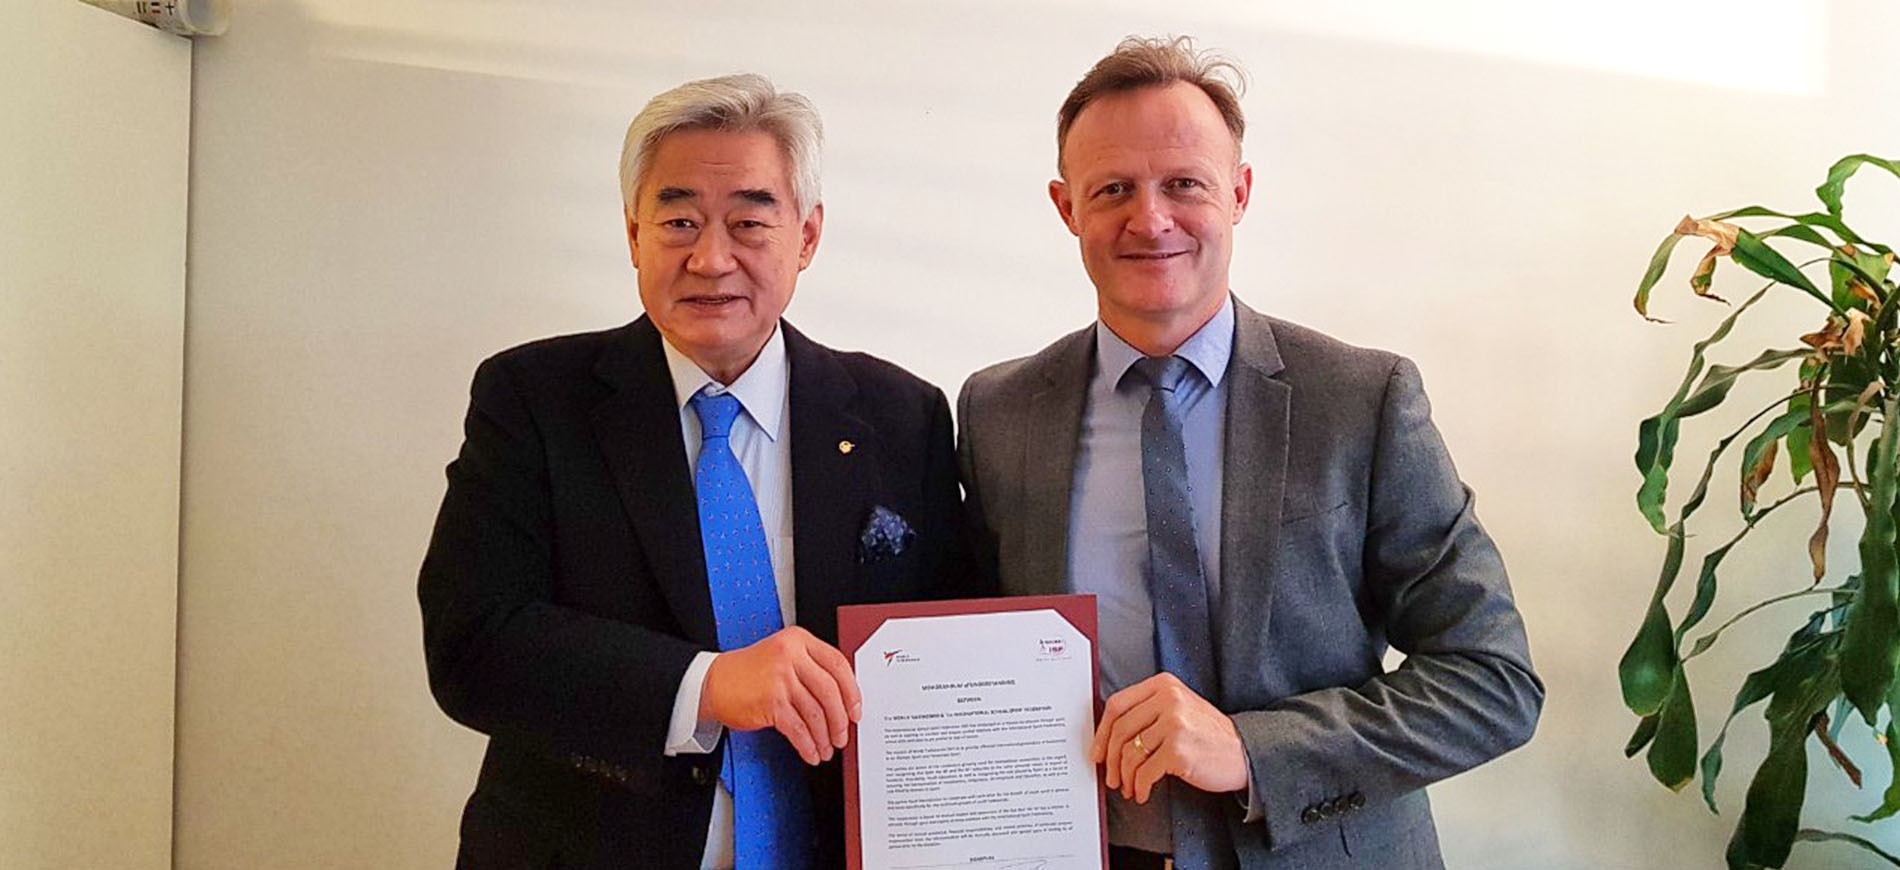 The Presidents of World Taekwondo, Chungwon Choue, left, and the International School Sport Federation, Laurent Petrynka, launch a Memorandum of Understanding in Lausanne ©World Taekwondo